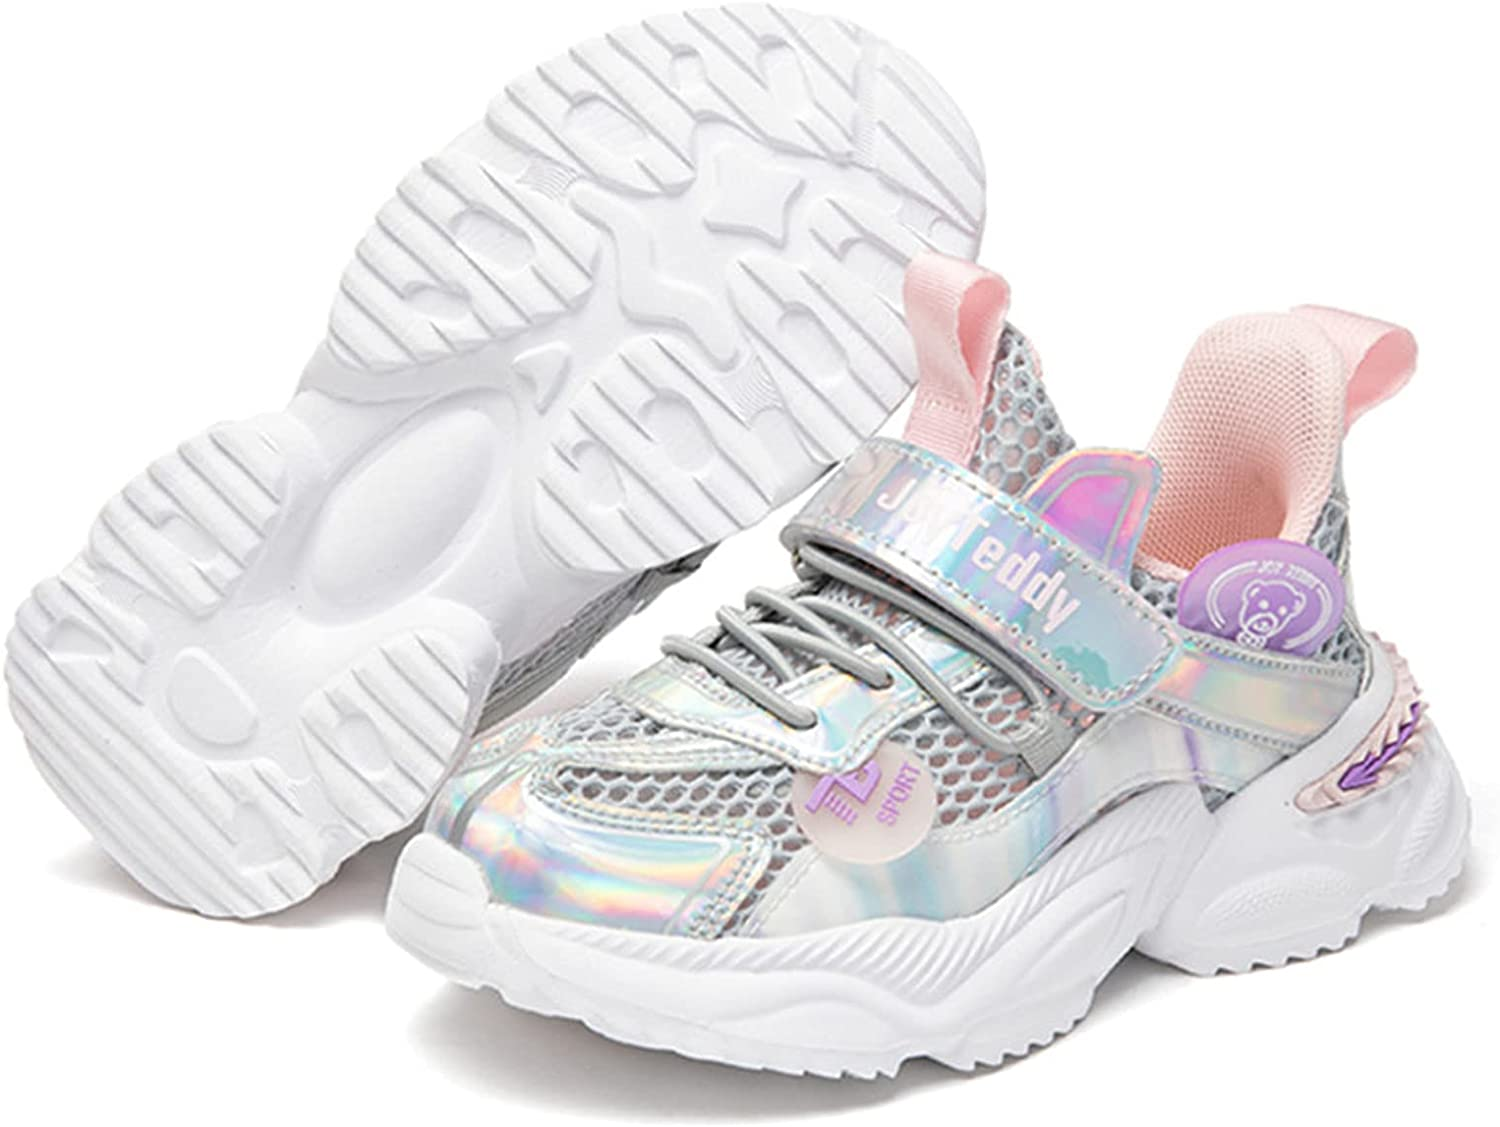 Stunner Boys Girls Running Shoes Lightweight Breathable Sneakers Sports Walking Shoes